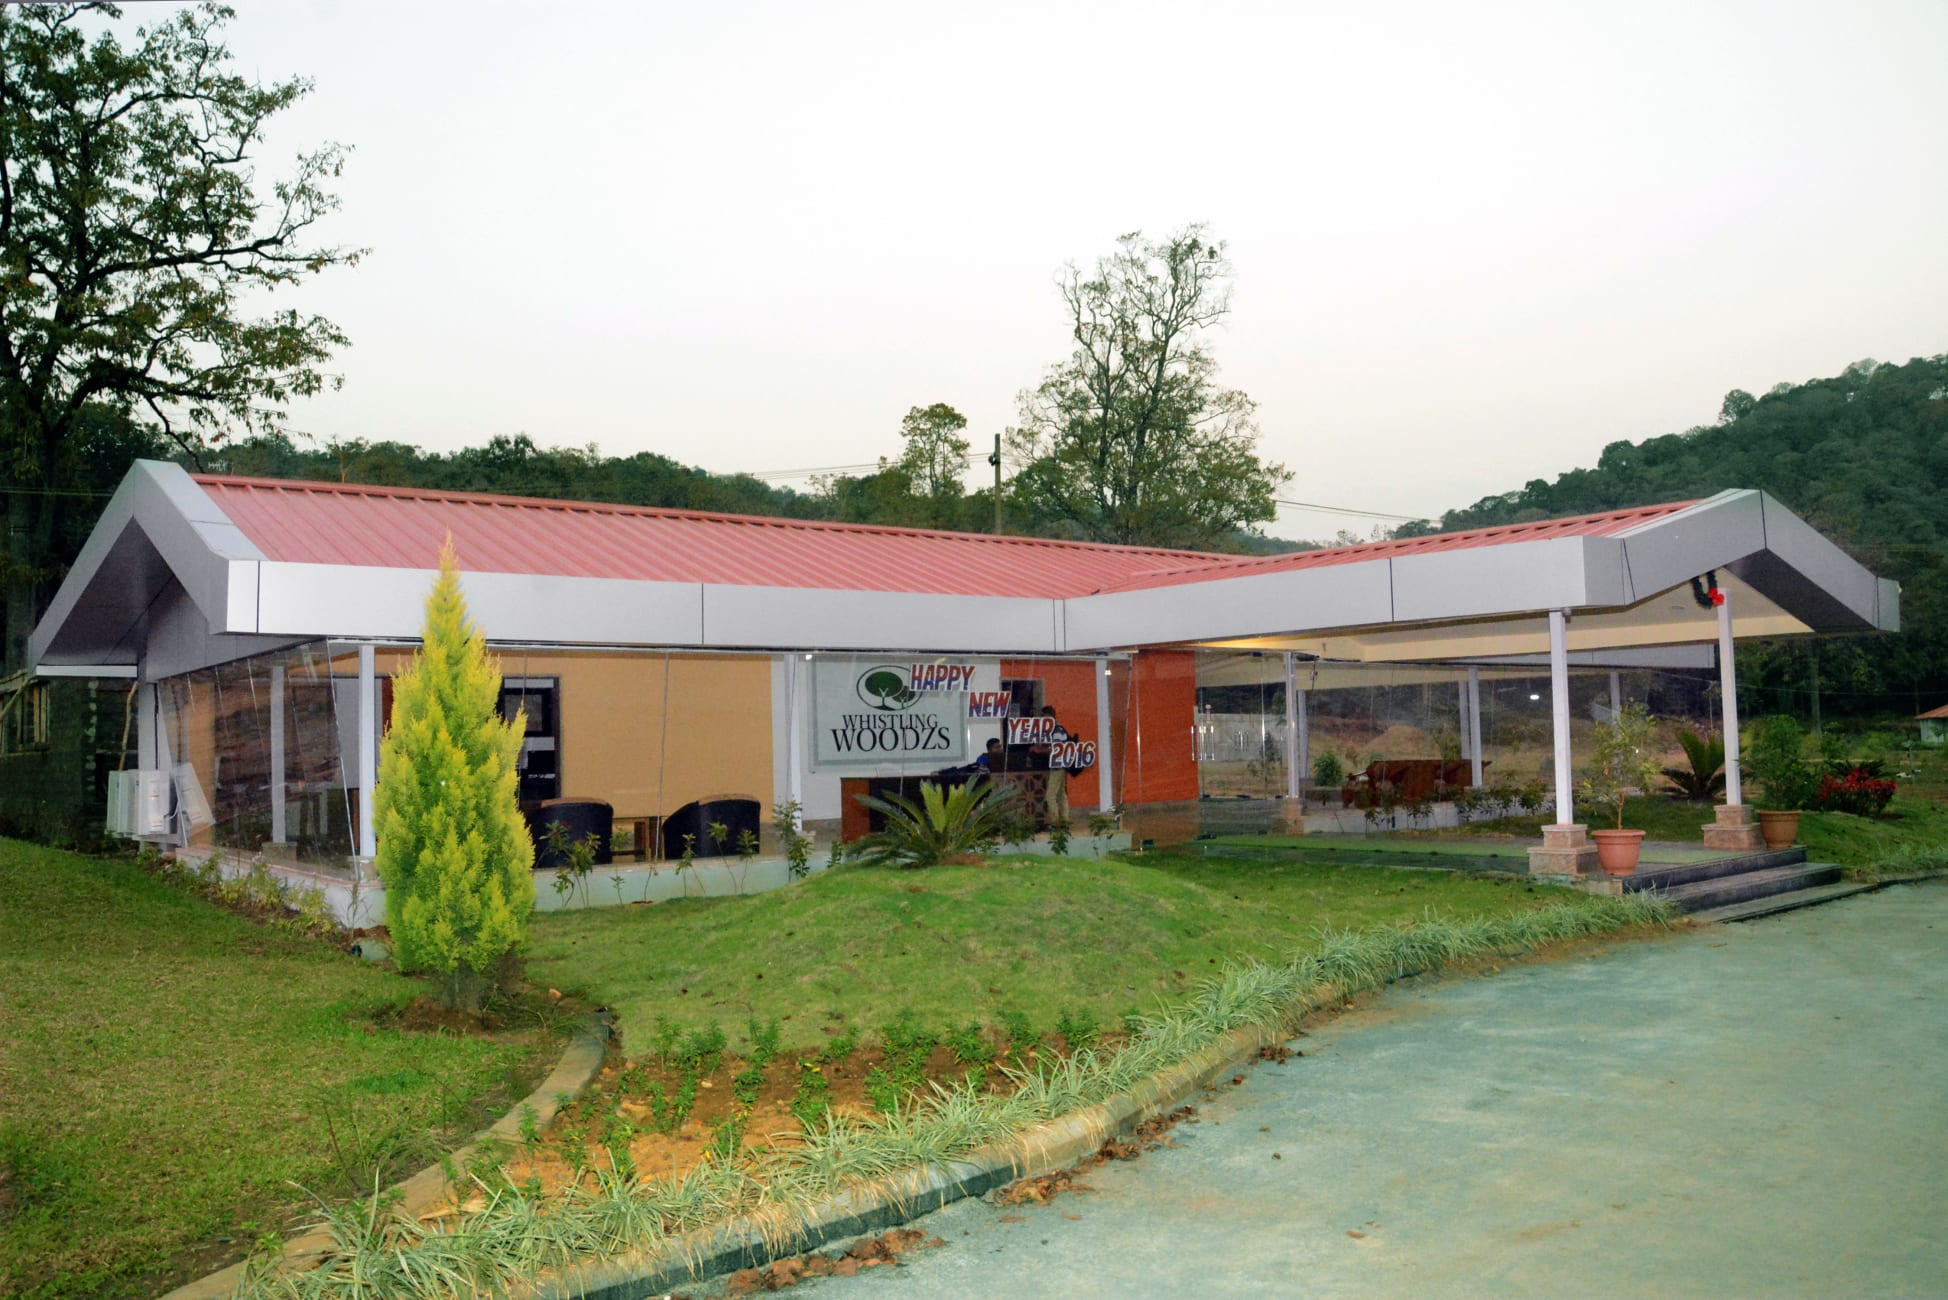 Resort Whistling Woodzs, Dandeli - trivago in